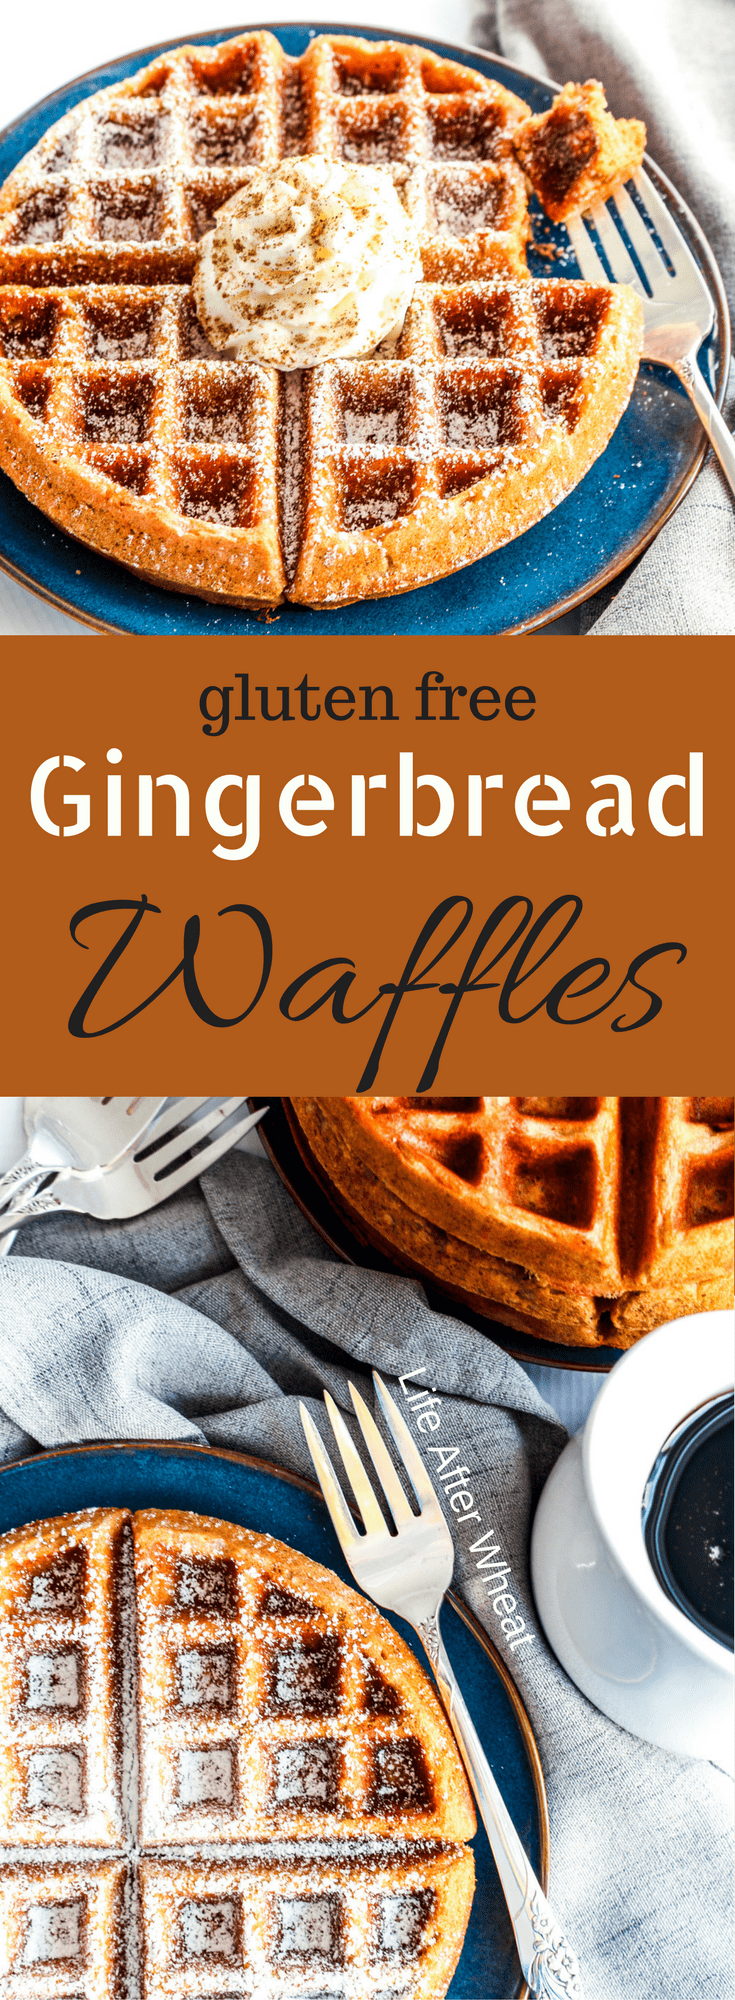 Gluten Free Gingerbread Waffles are packed with perfectly spiced gingerbread flavor and a feature a perfectly delicate texture. You would never know they're gluten free! #glutenfreebreakfasts